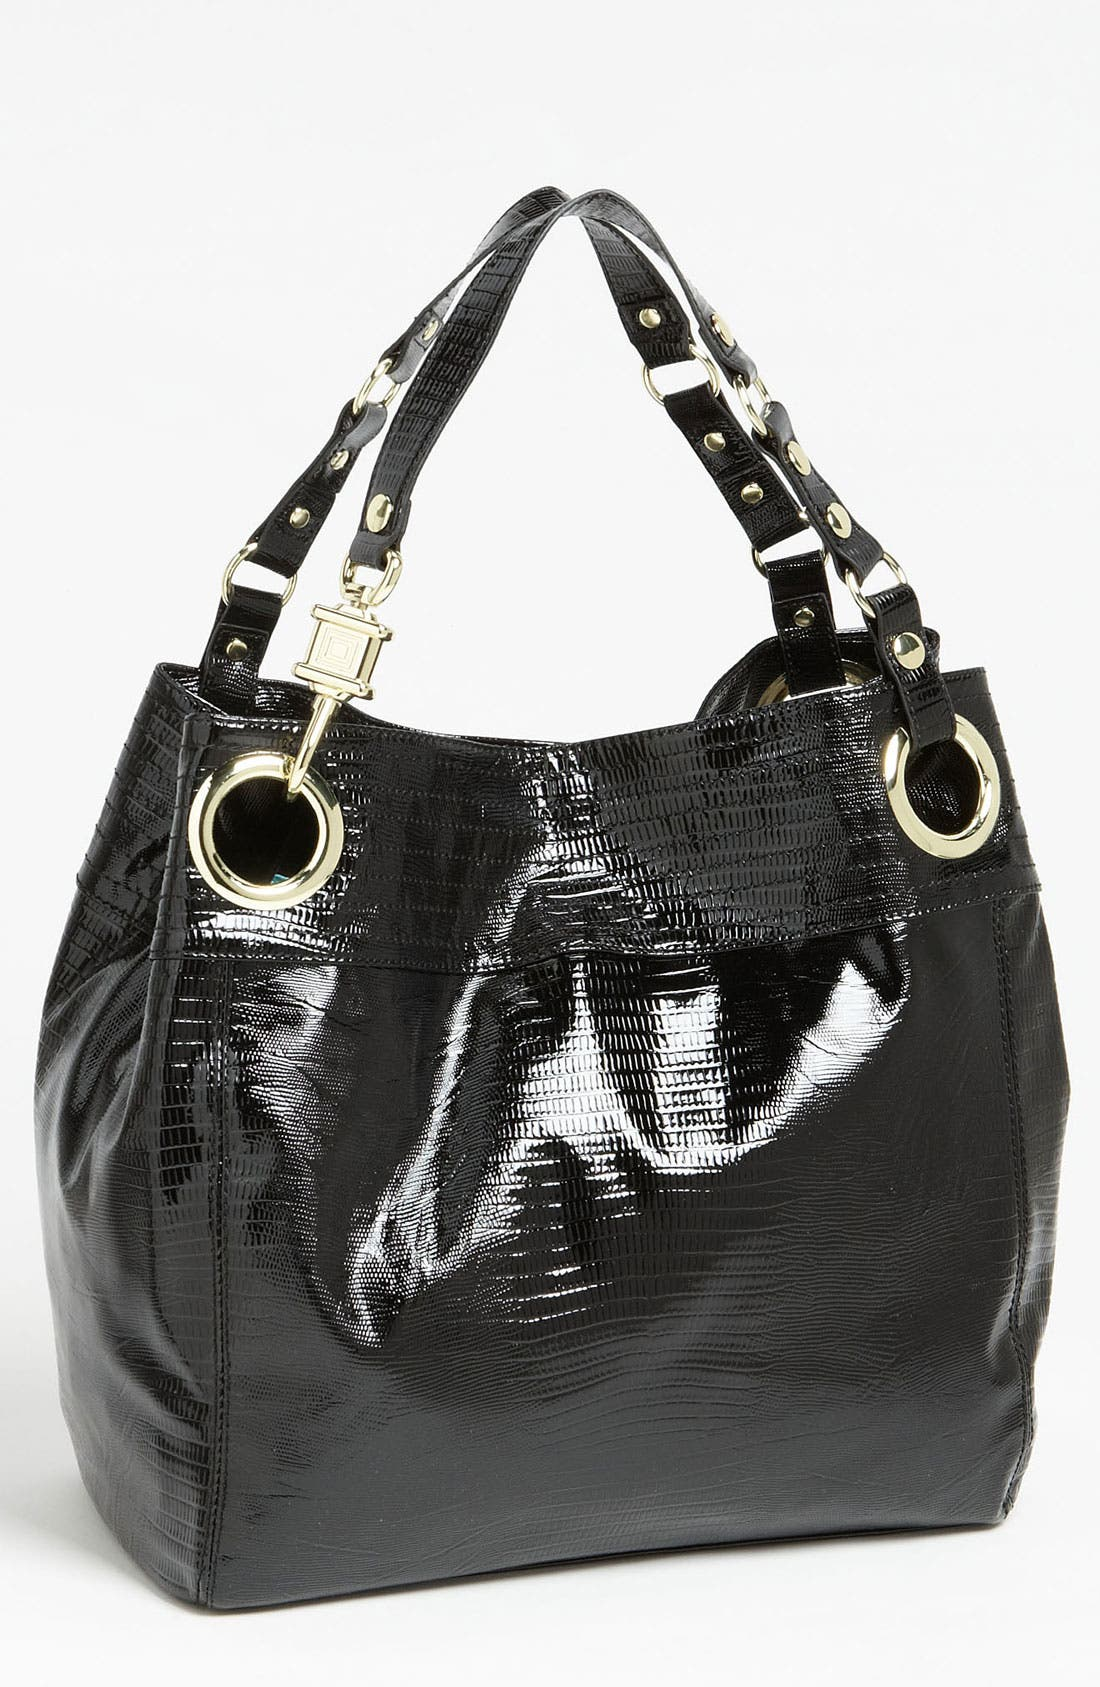 Alternate Image 1 Selected - Steven by Steve Madden 'Candy Coated' Lizard Embossed Tote